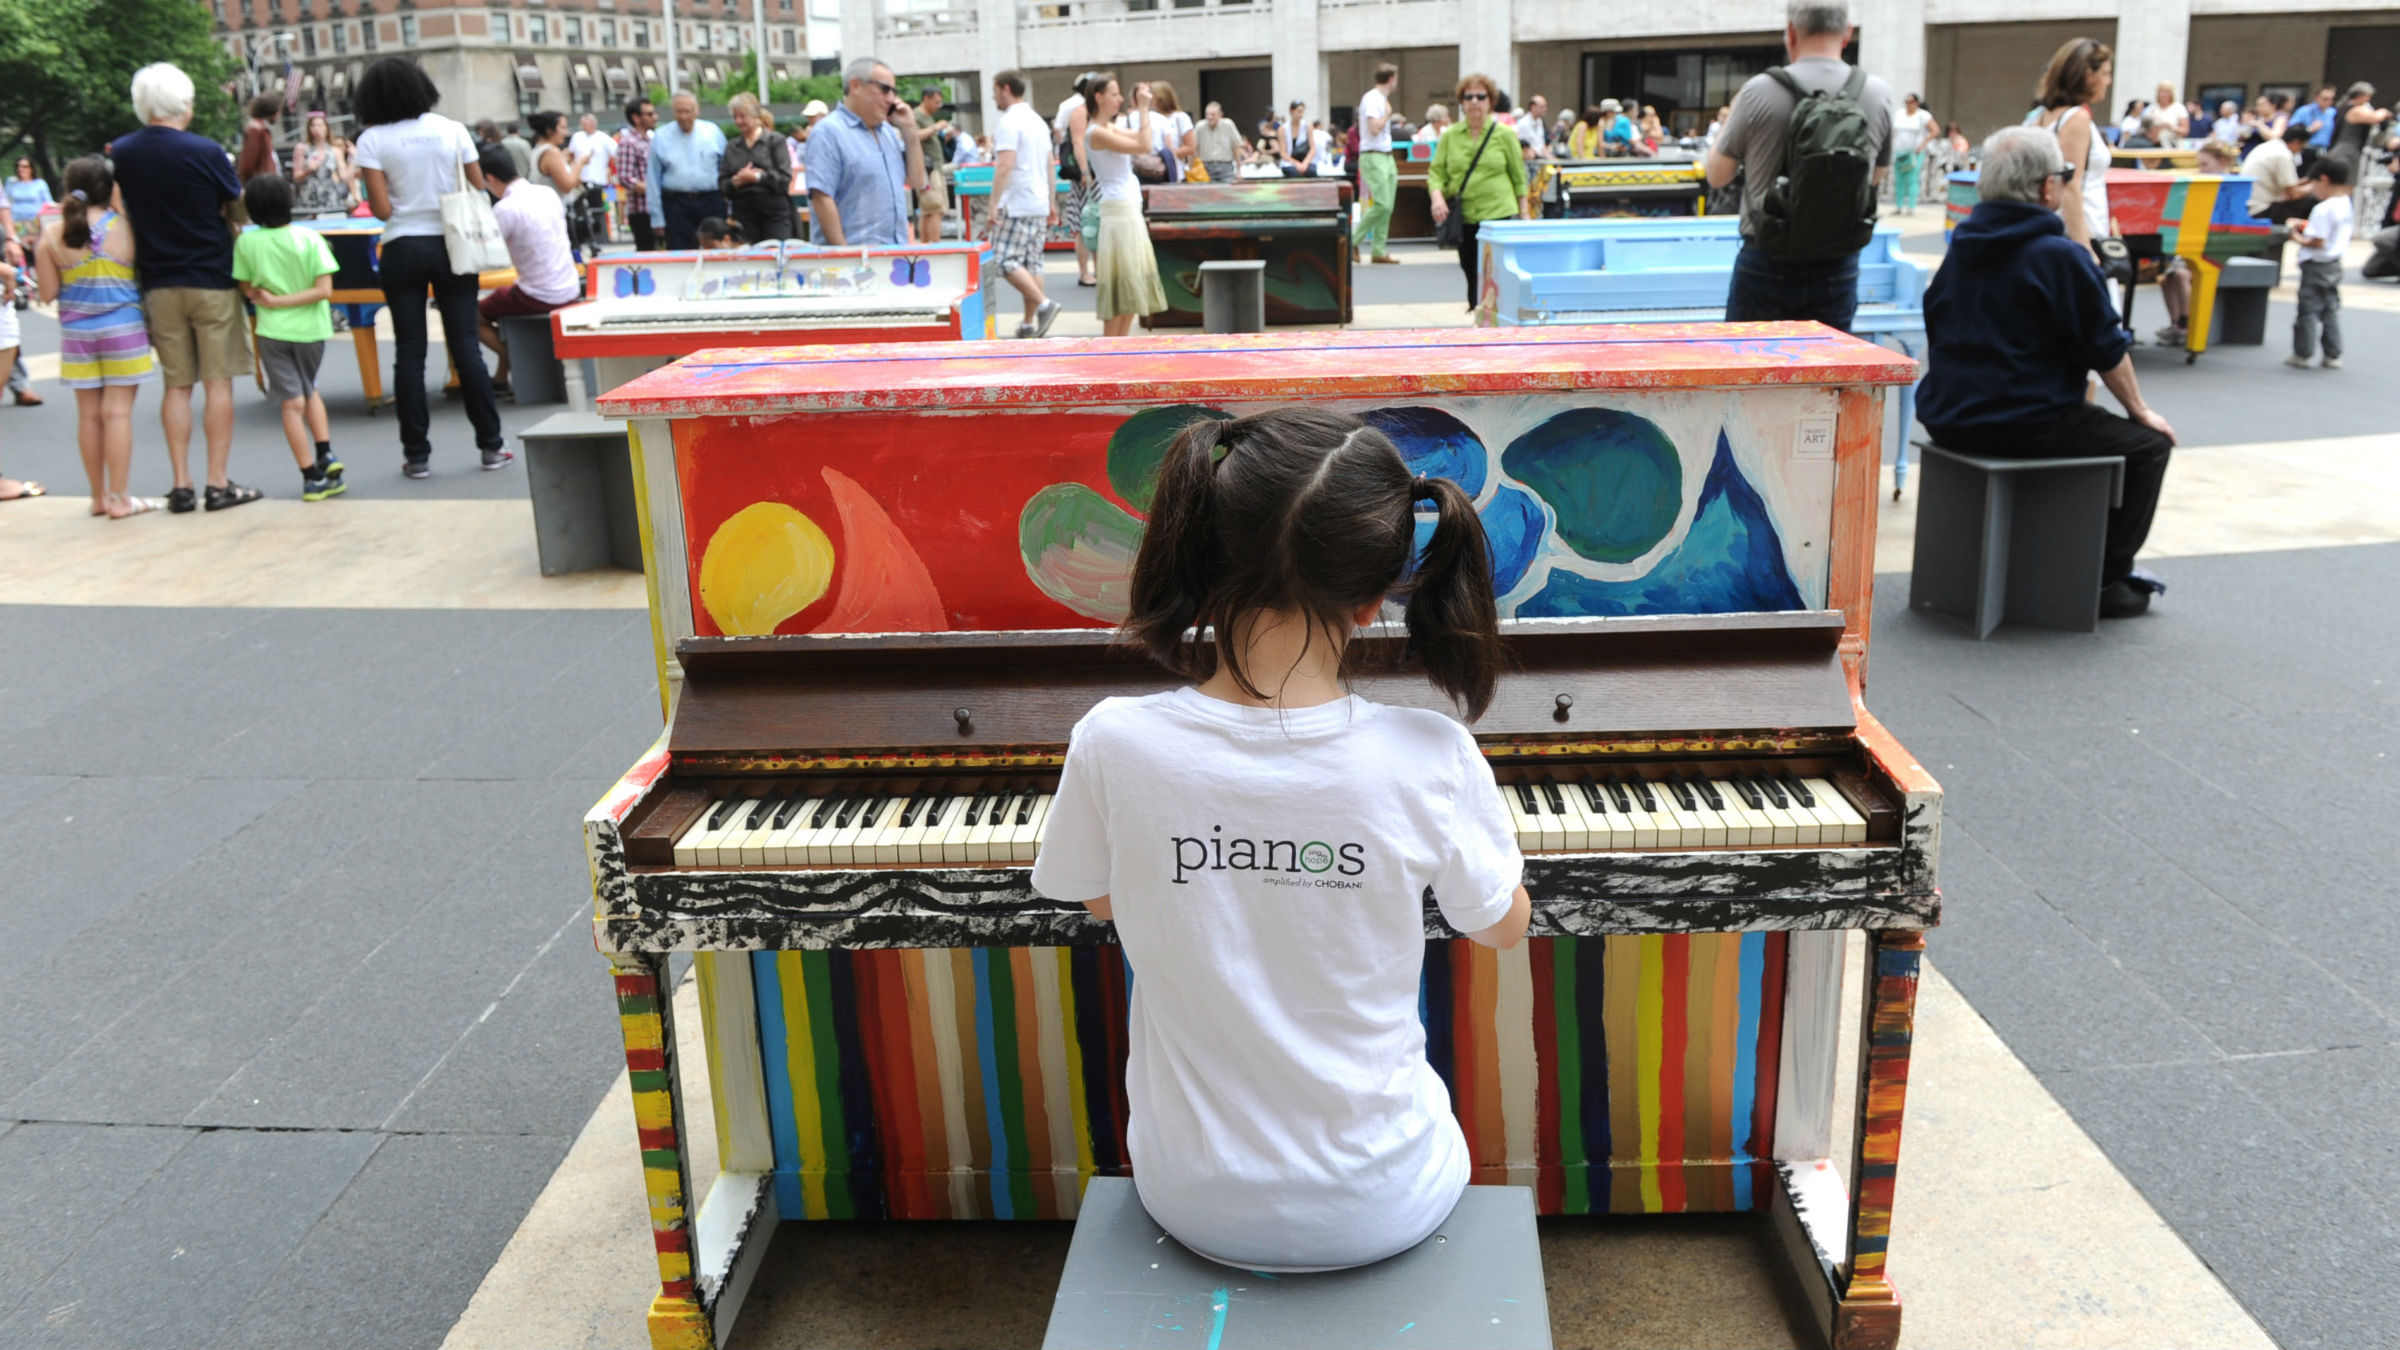 Learning music is children's play.